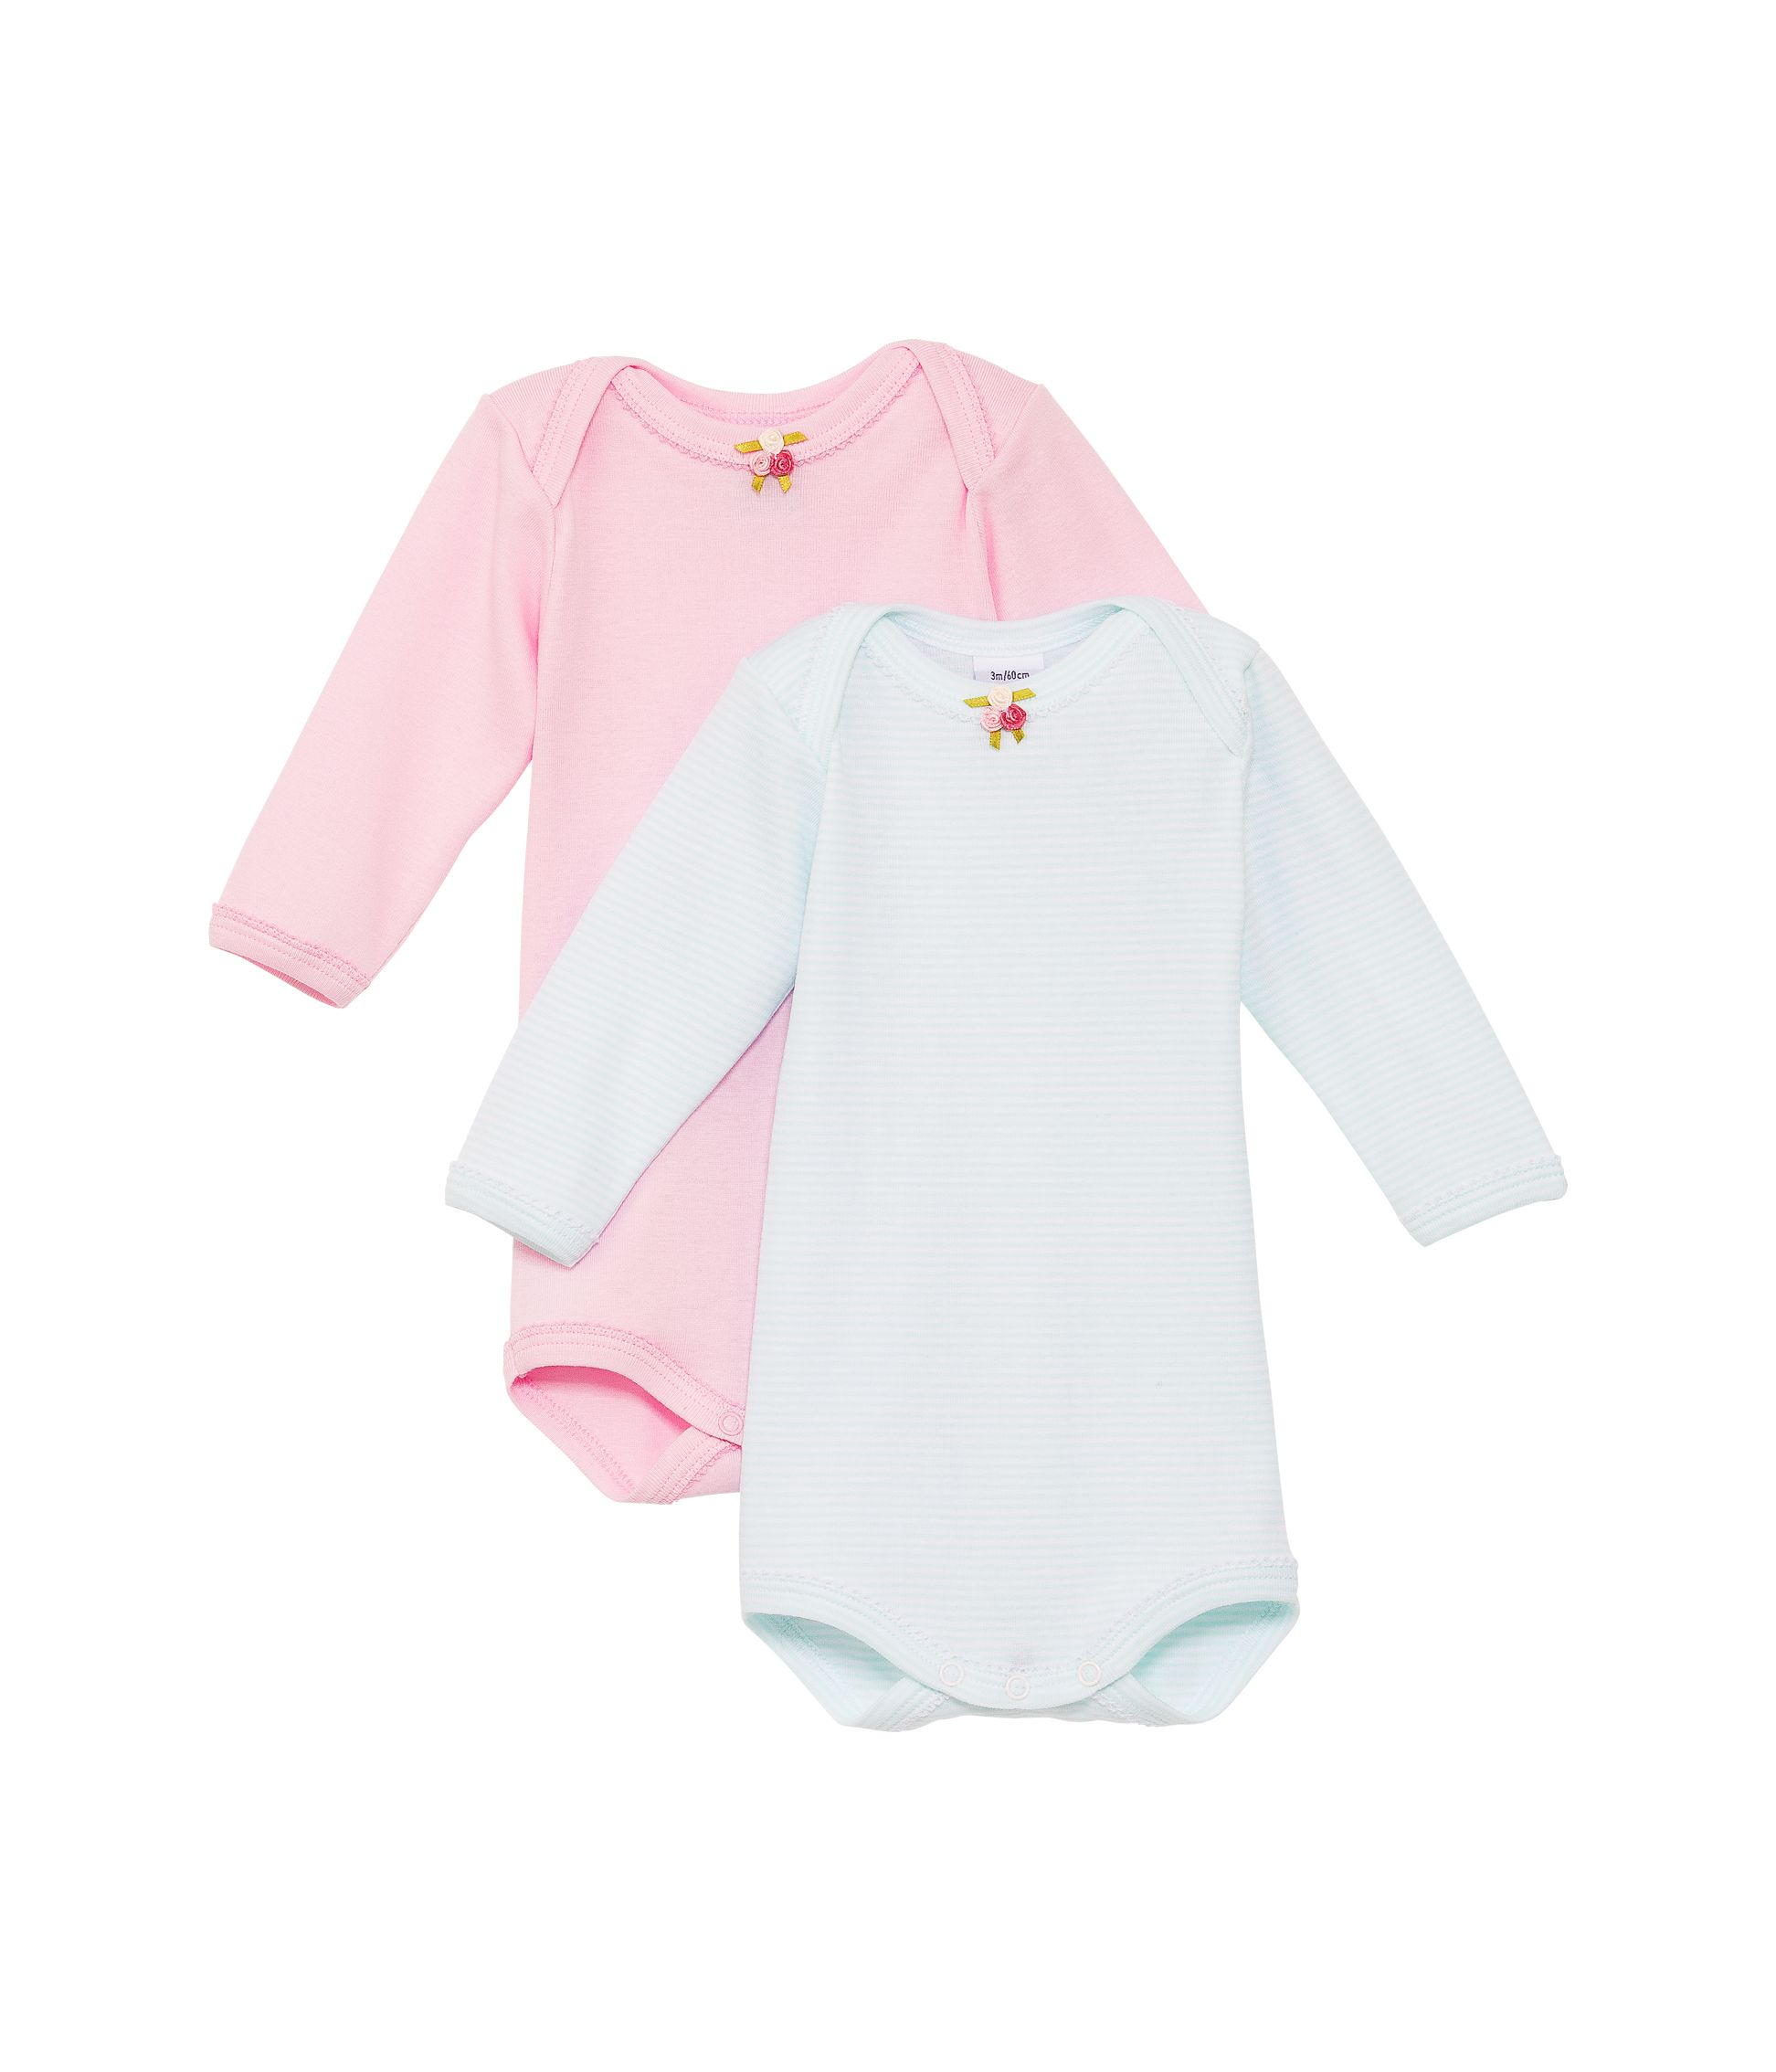 Baby girls 2 pack bodysuits